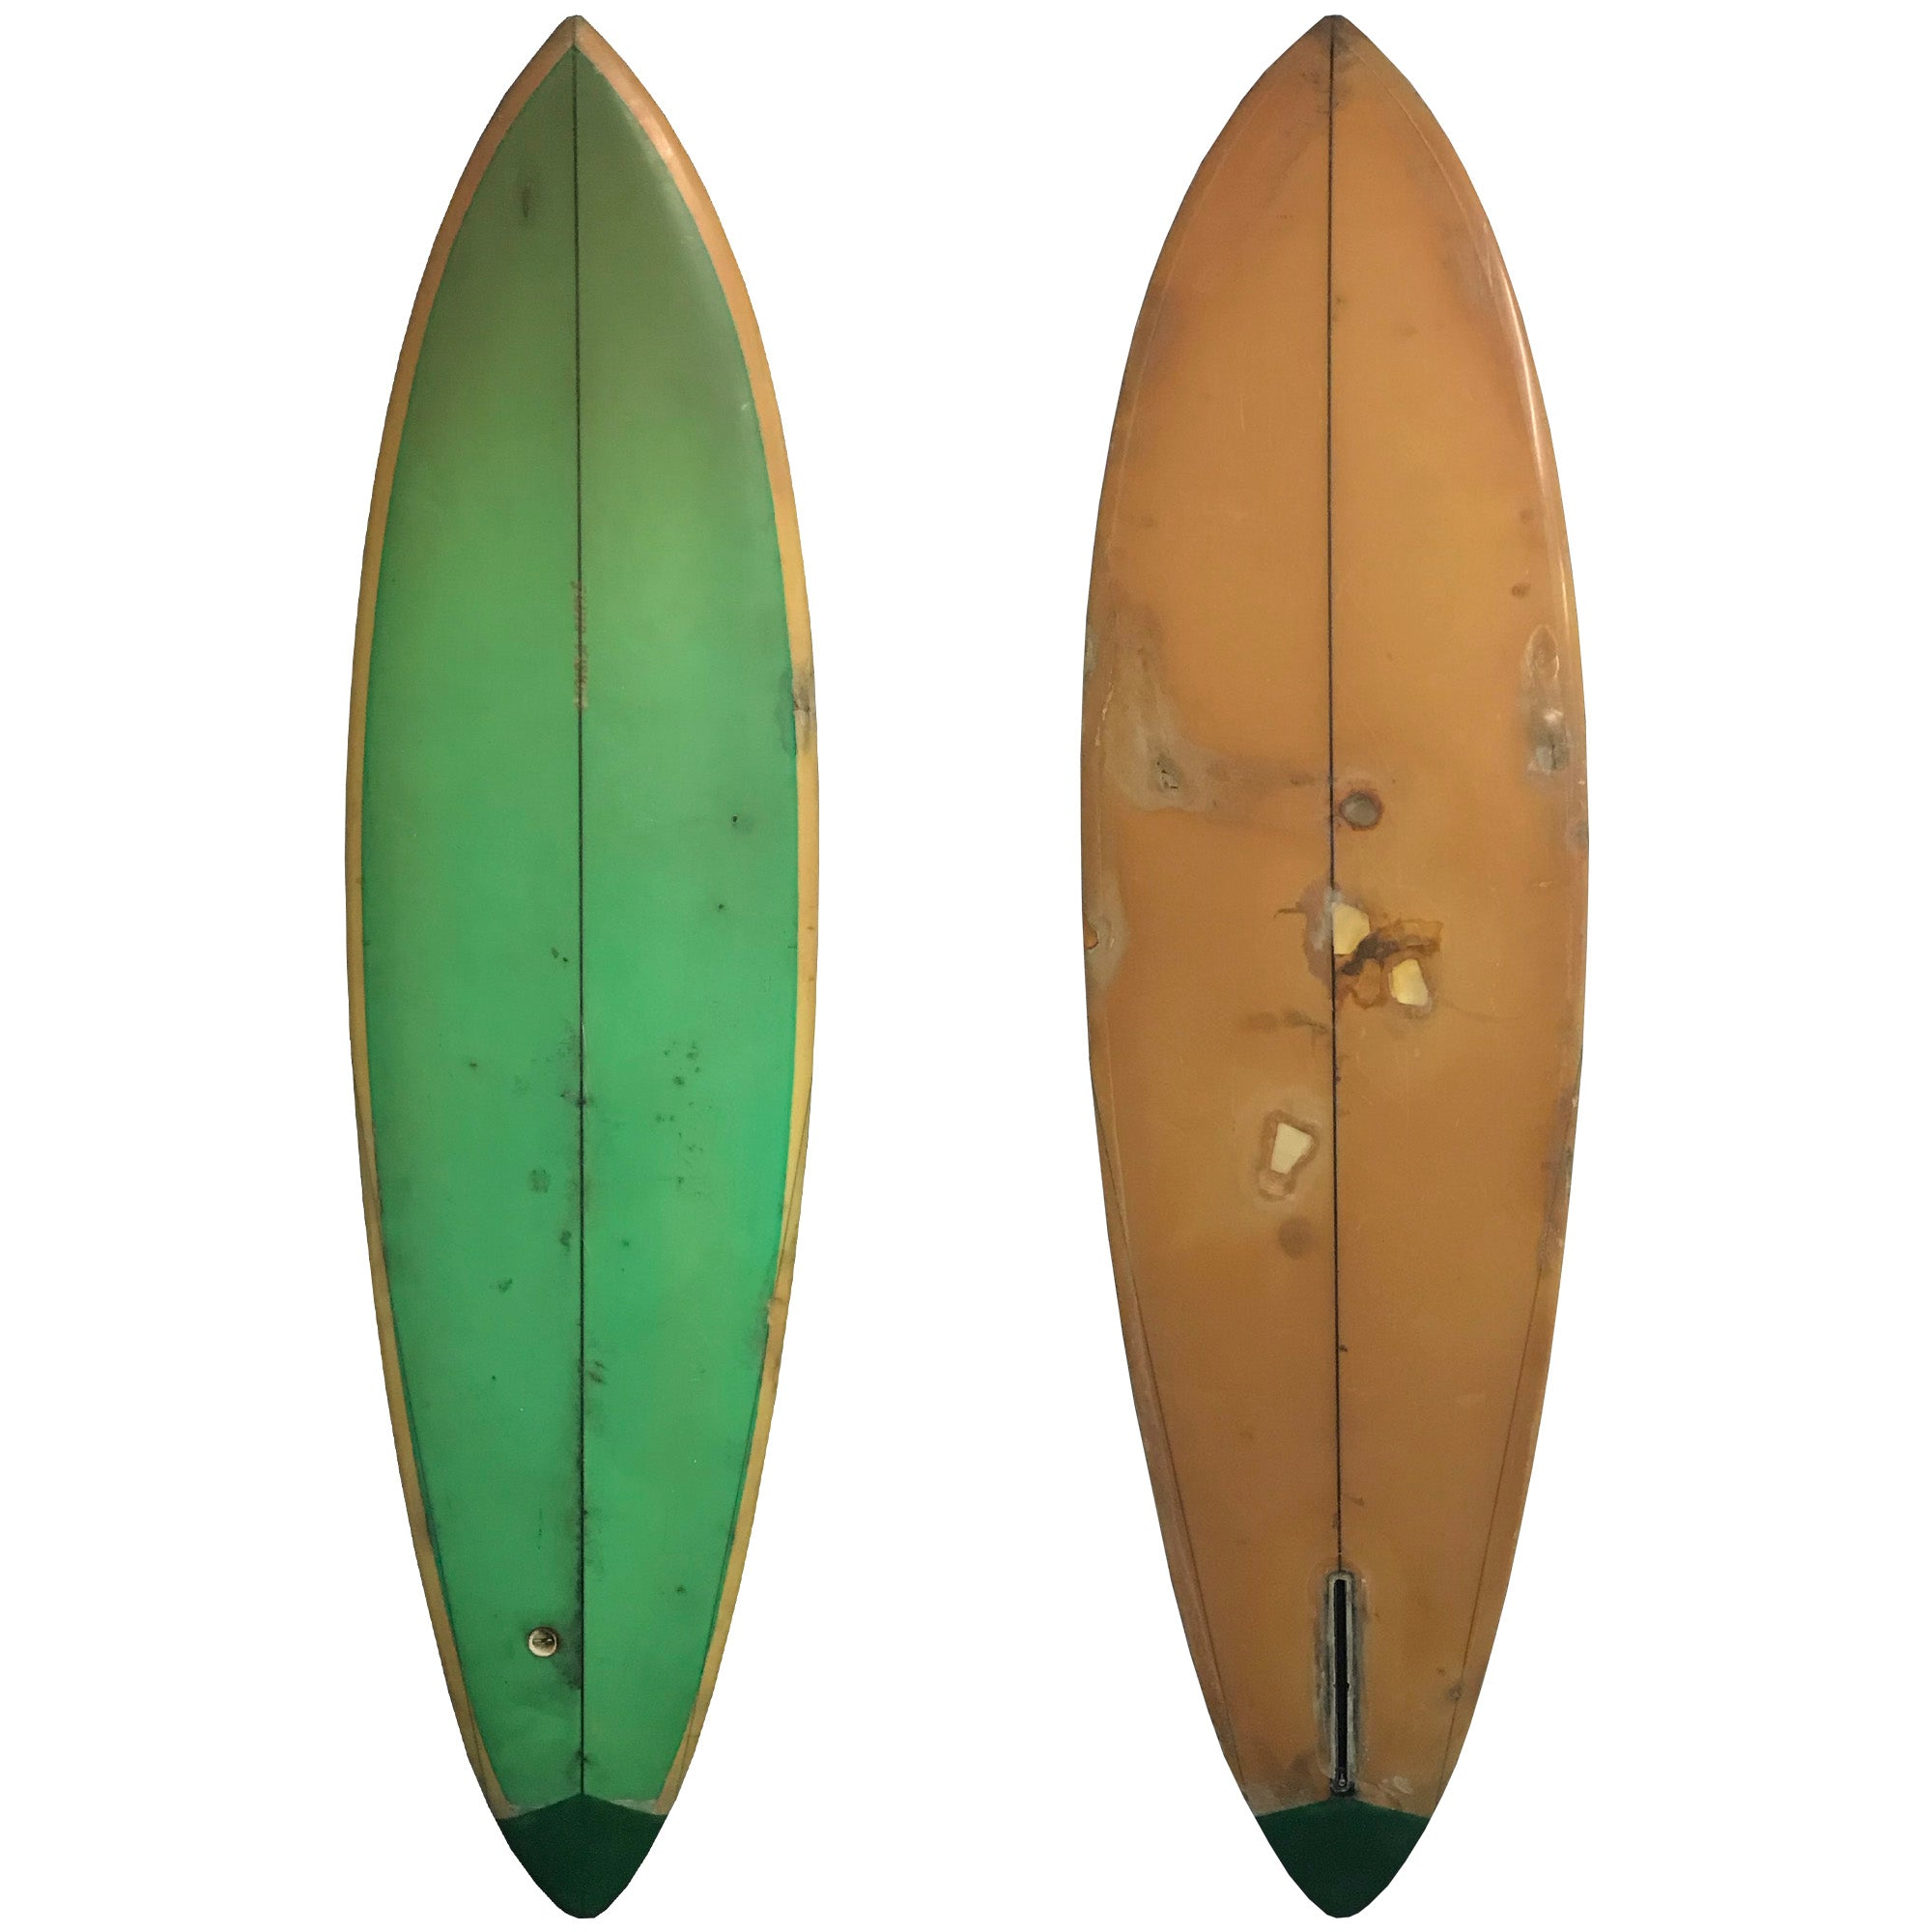 Fluid Vision 7' Collector's Surfboard